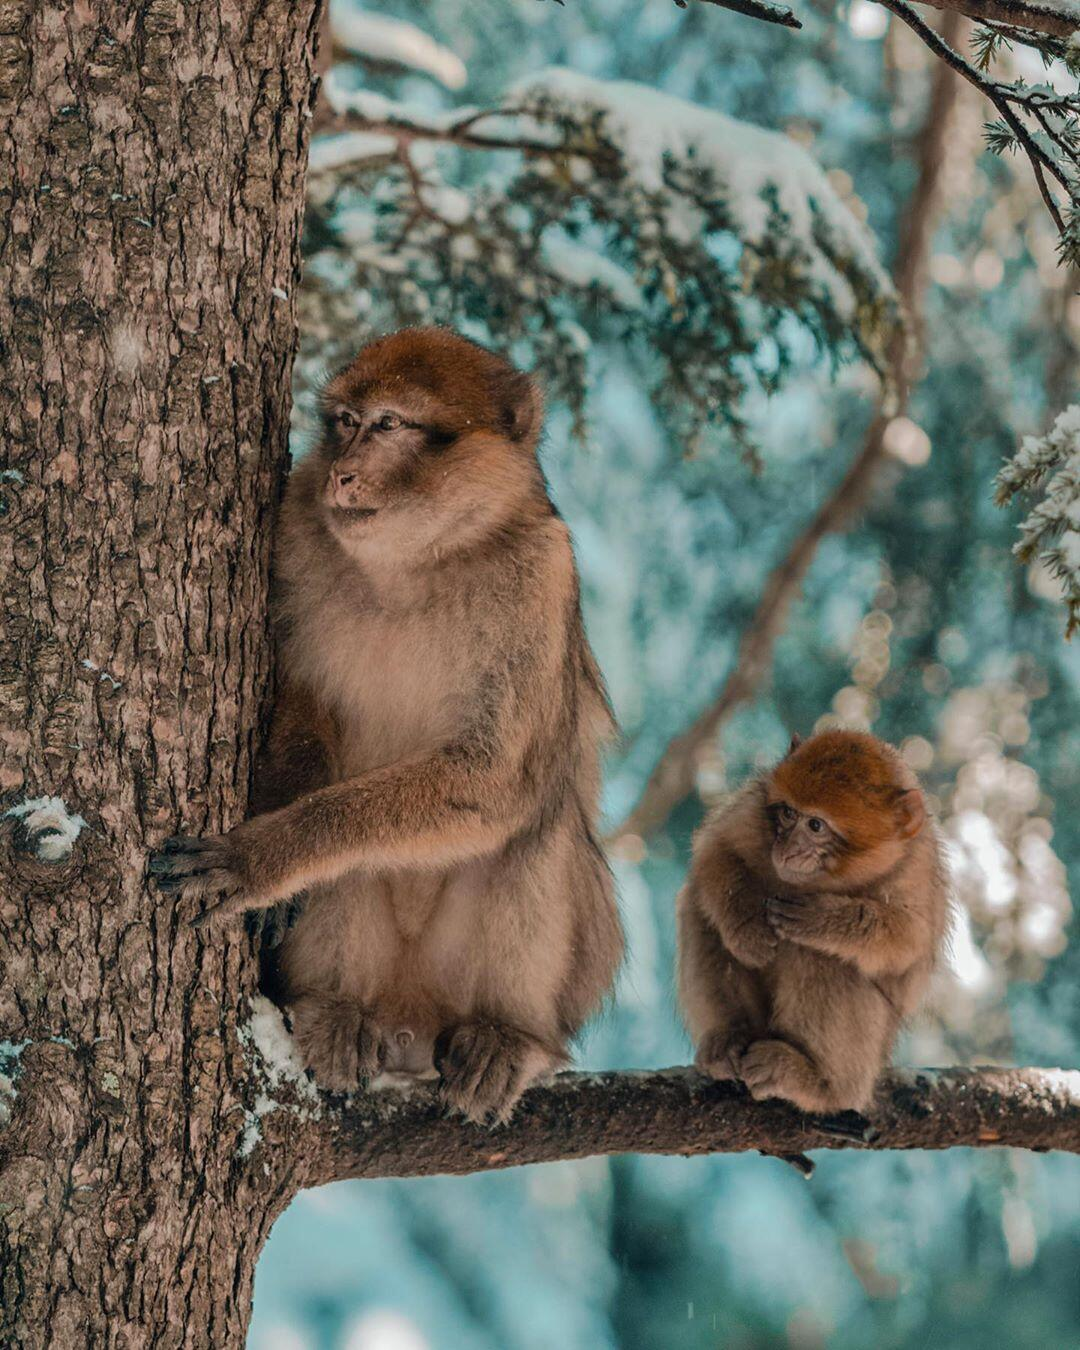 monkeys on the trees of cedar at Azrou